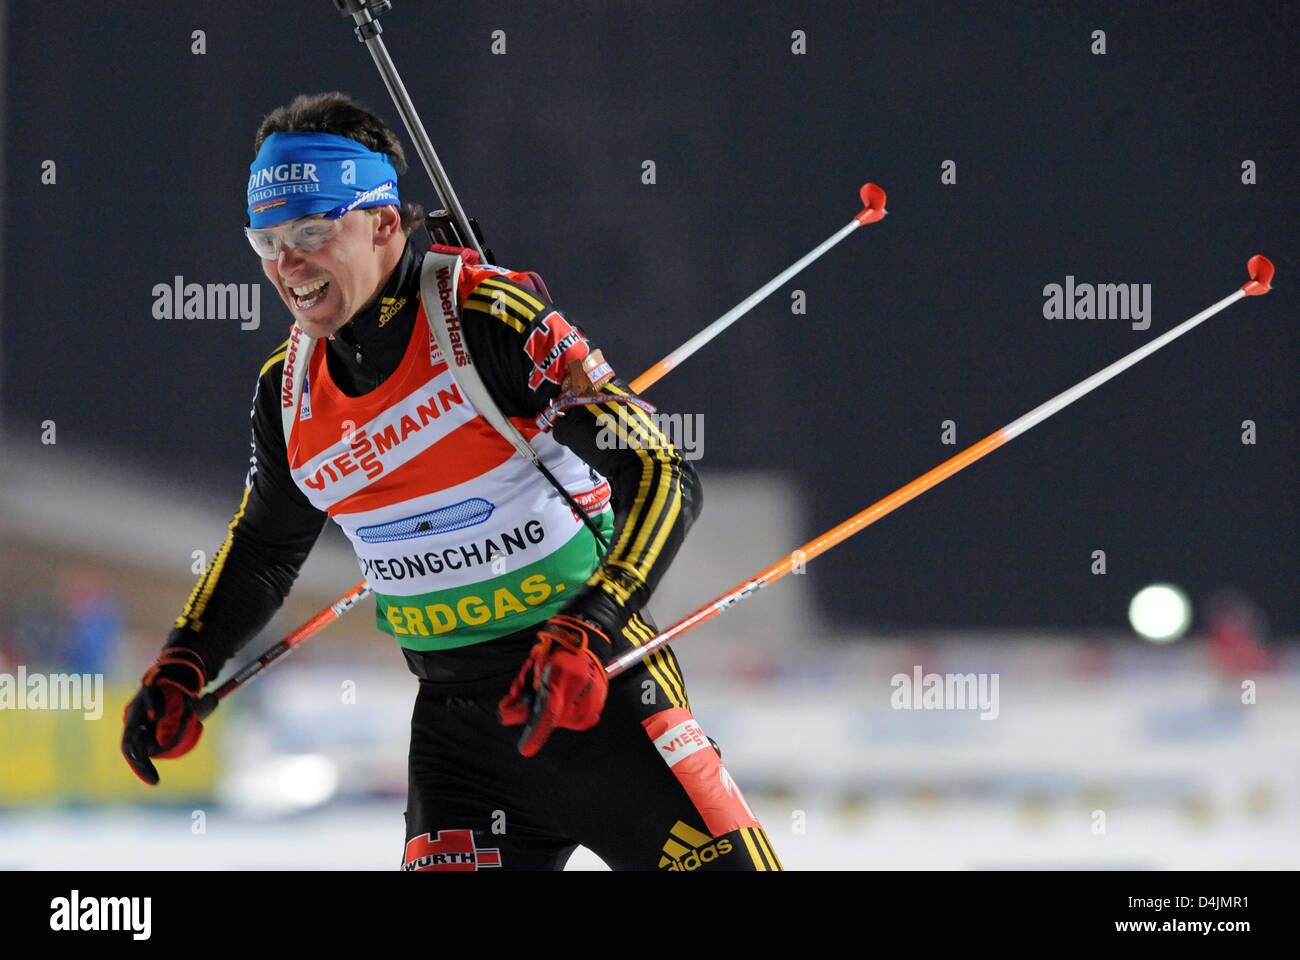 Michael Greis is pictured during the 4x6 kilometres mixed relay competition at the Biathlon World Championships - Stock Image